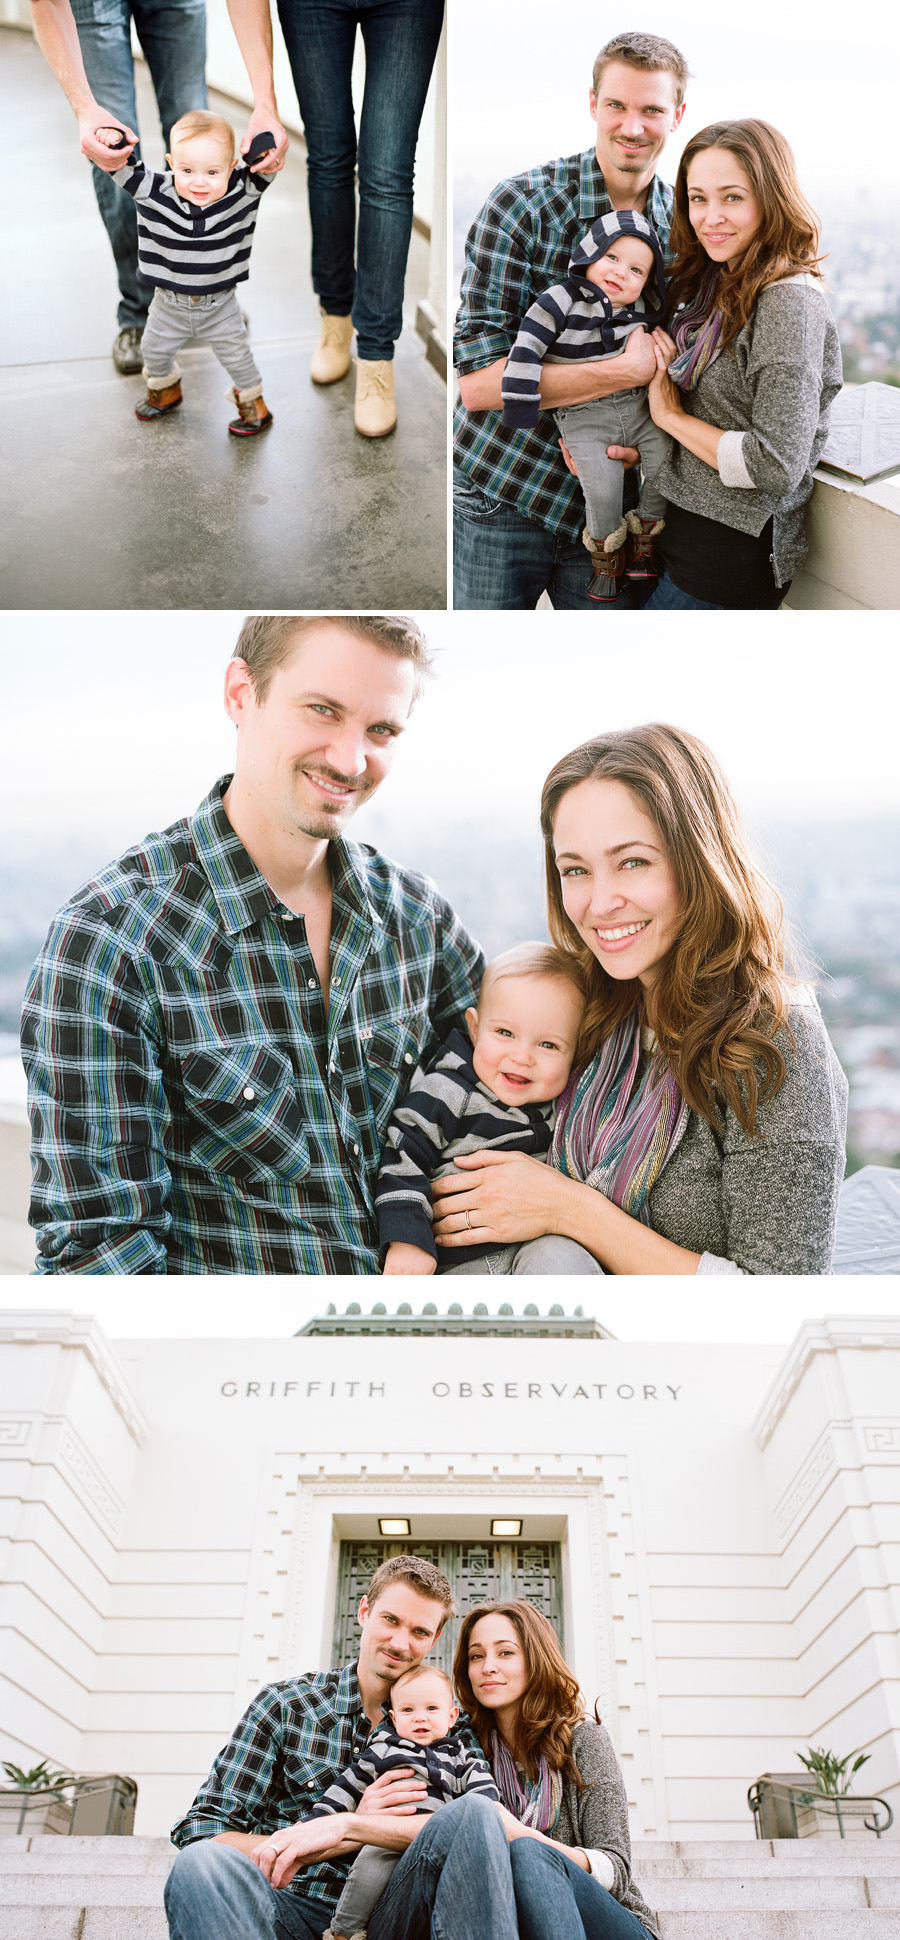 Autumn Resser and Jesse Warren Family Photos at Griffith Observatory 0009